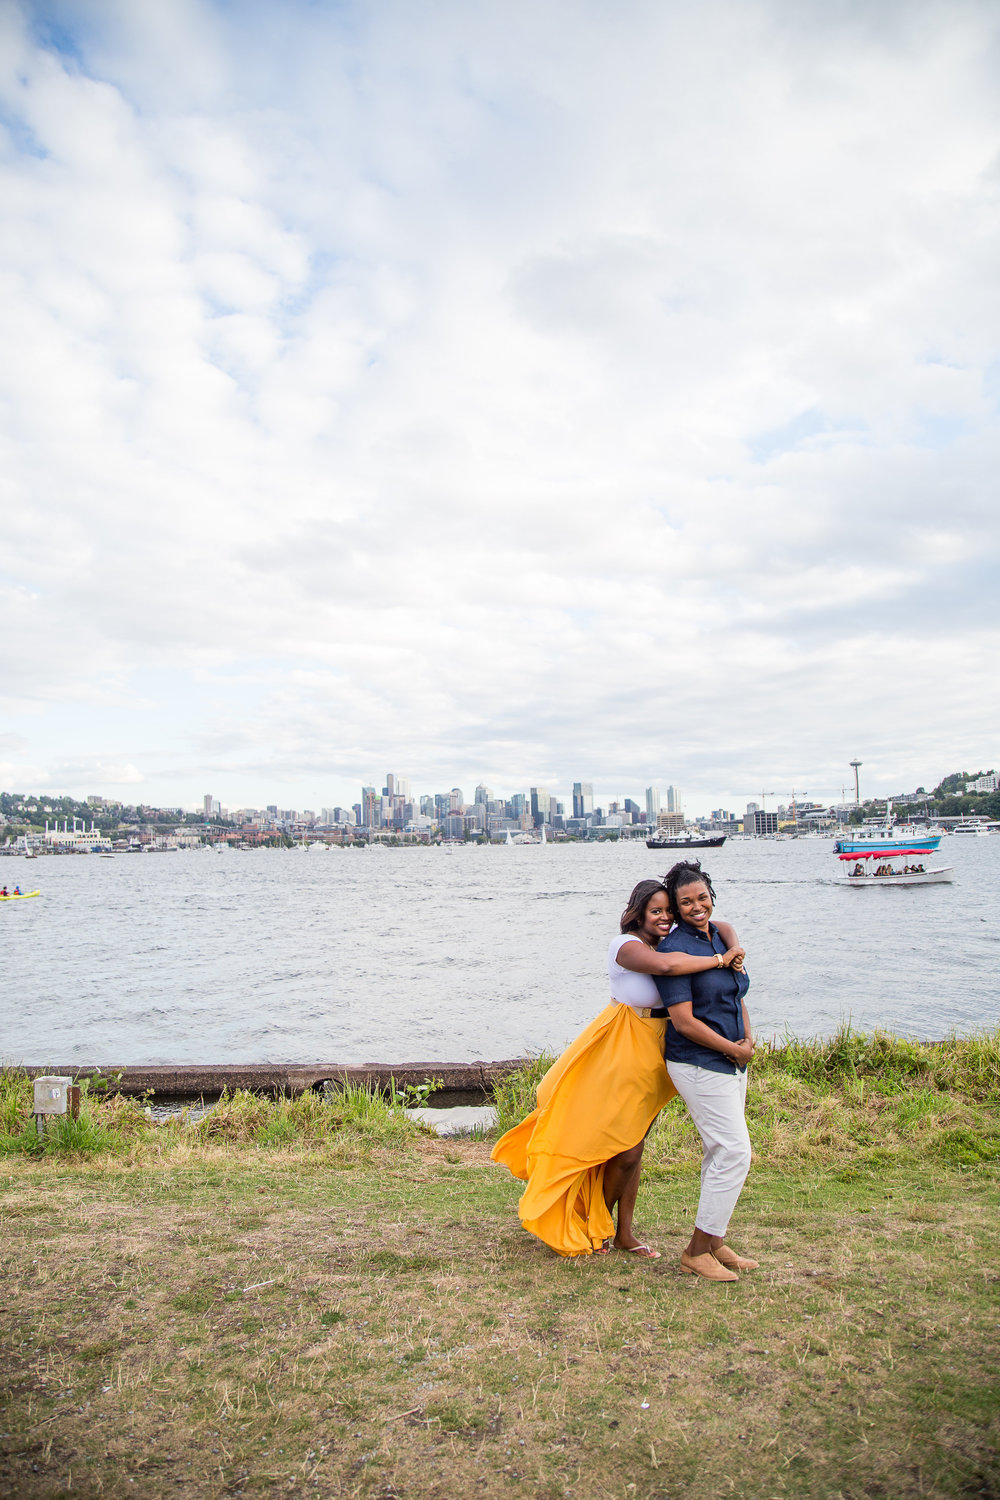 Taymah and Brittany hugging in the Gas Works Park against the Seattle skyline